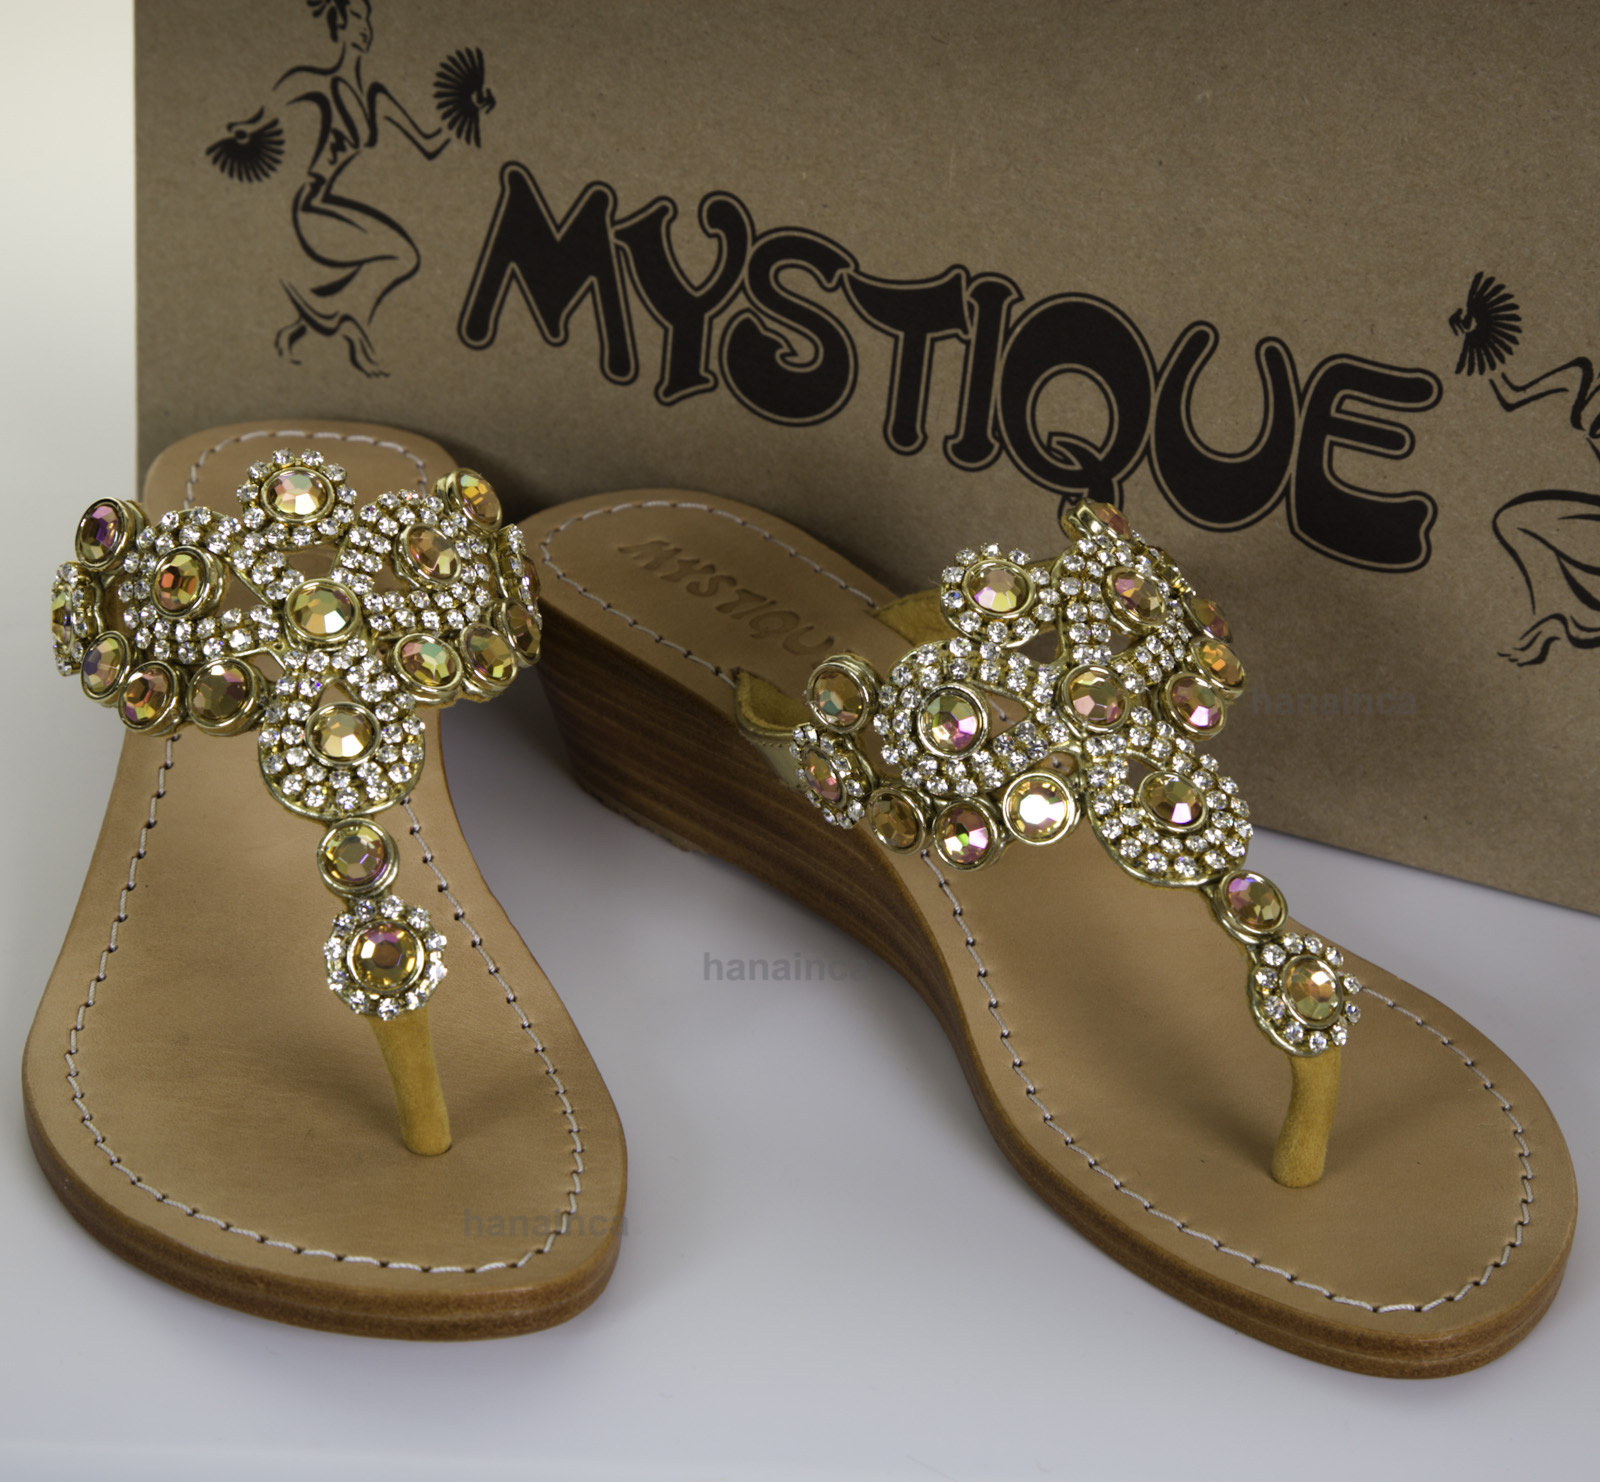 shop mystique shoes